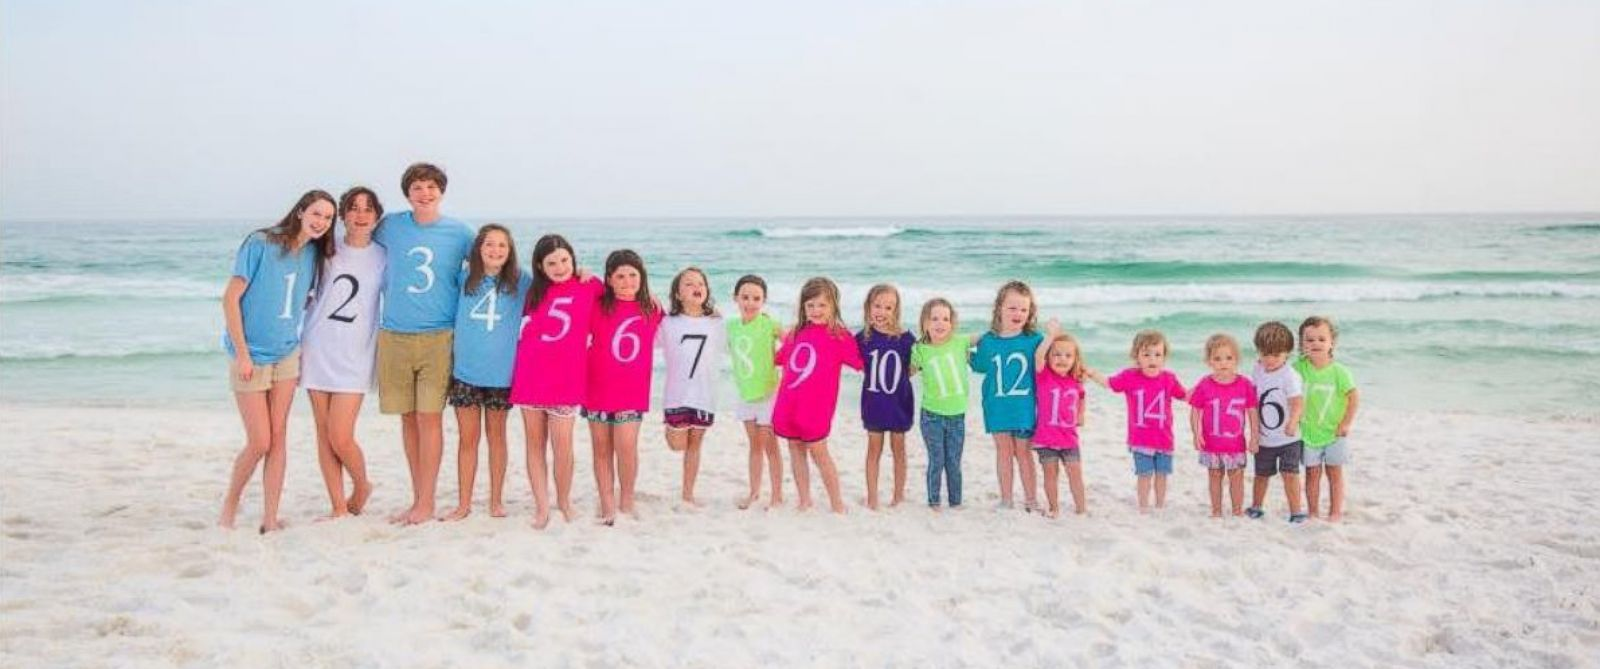 PHOTO: 17 cousins line up on the beach for a touching family photo.